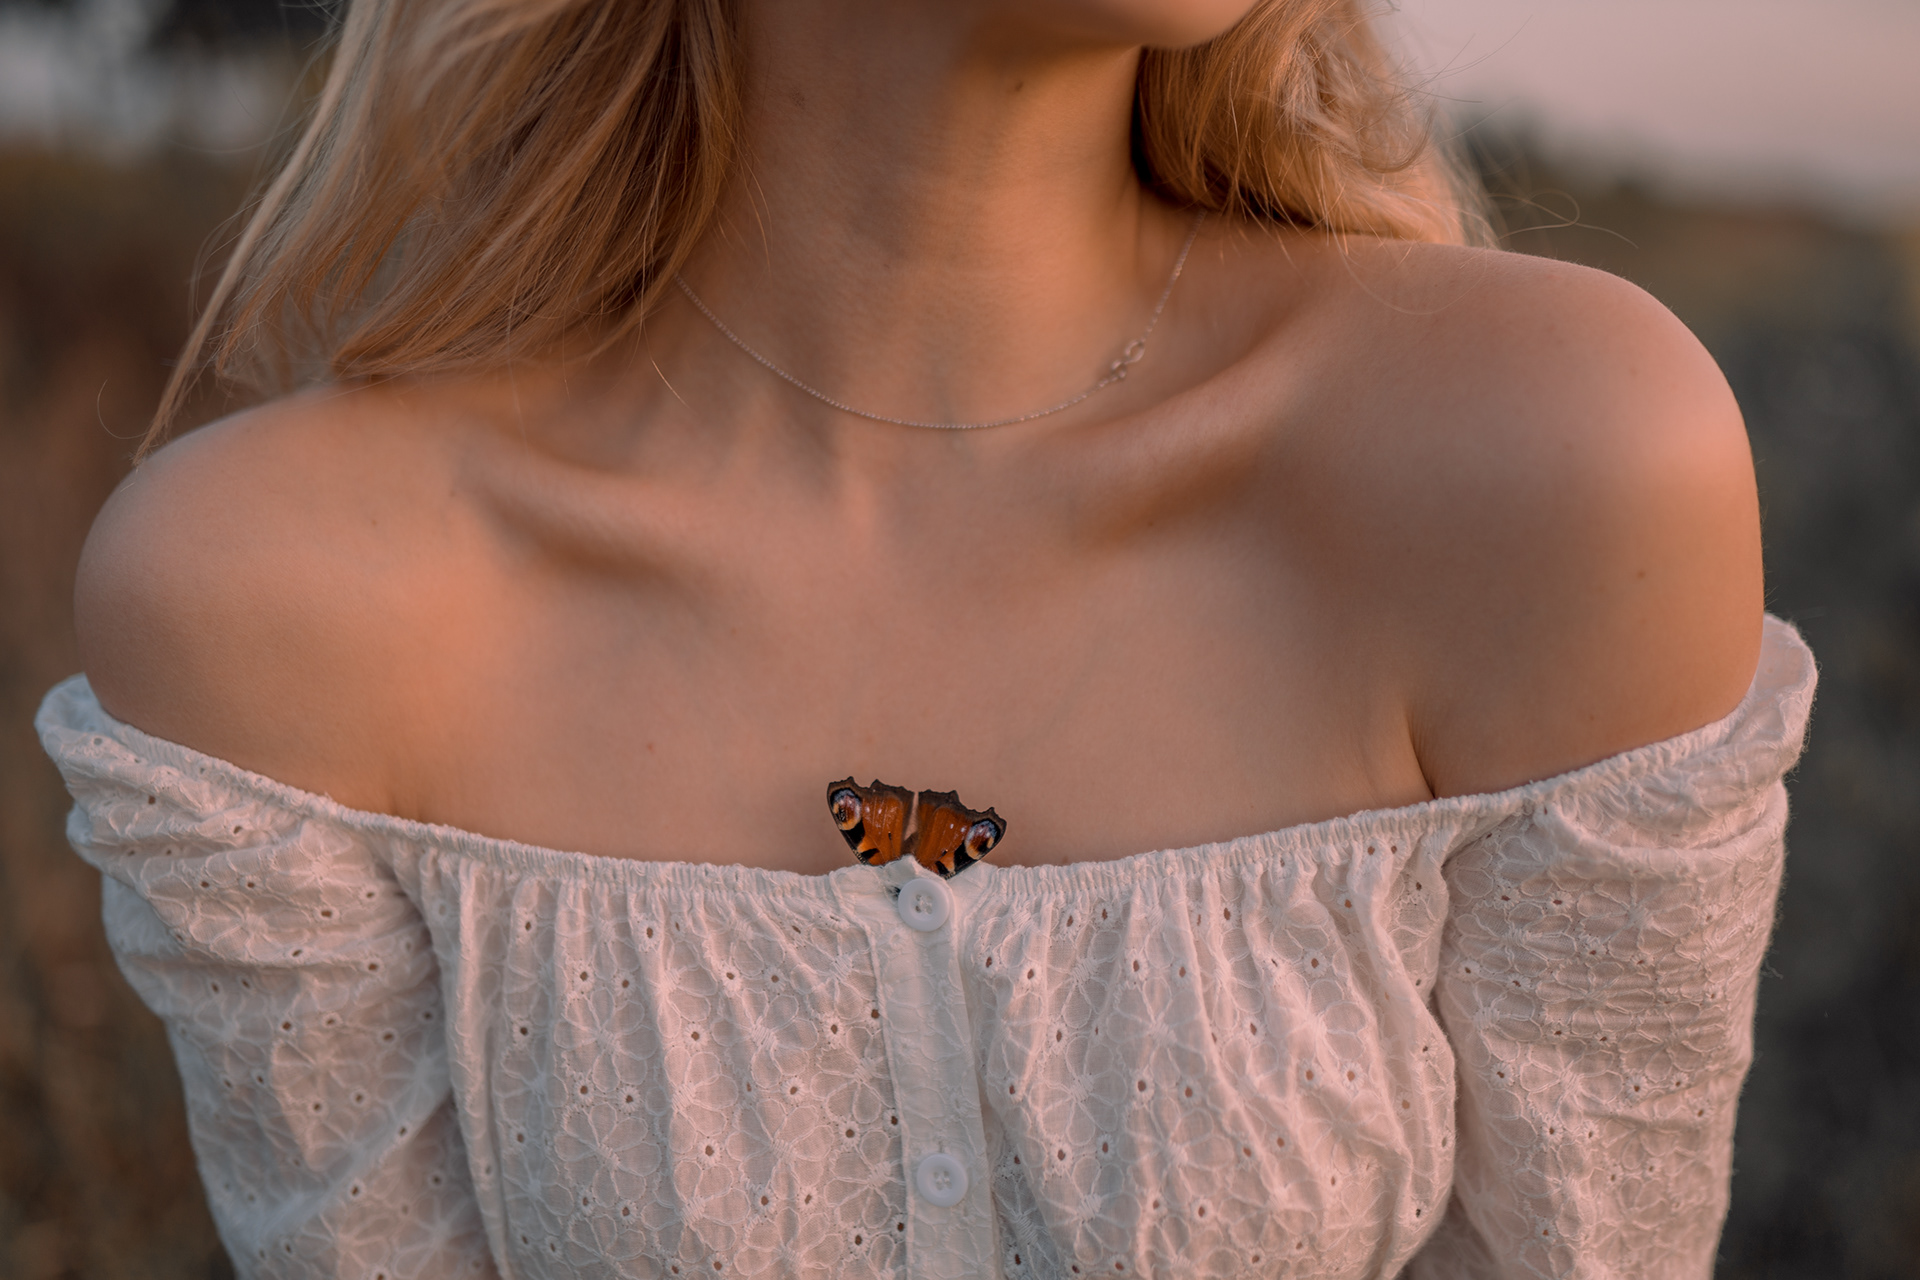 Butterflies live for a day